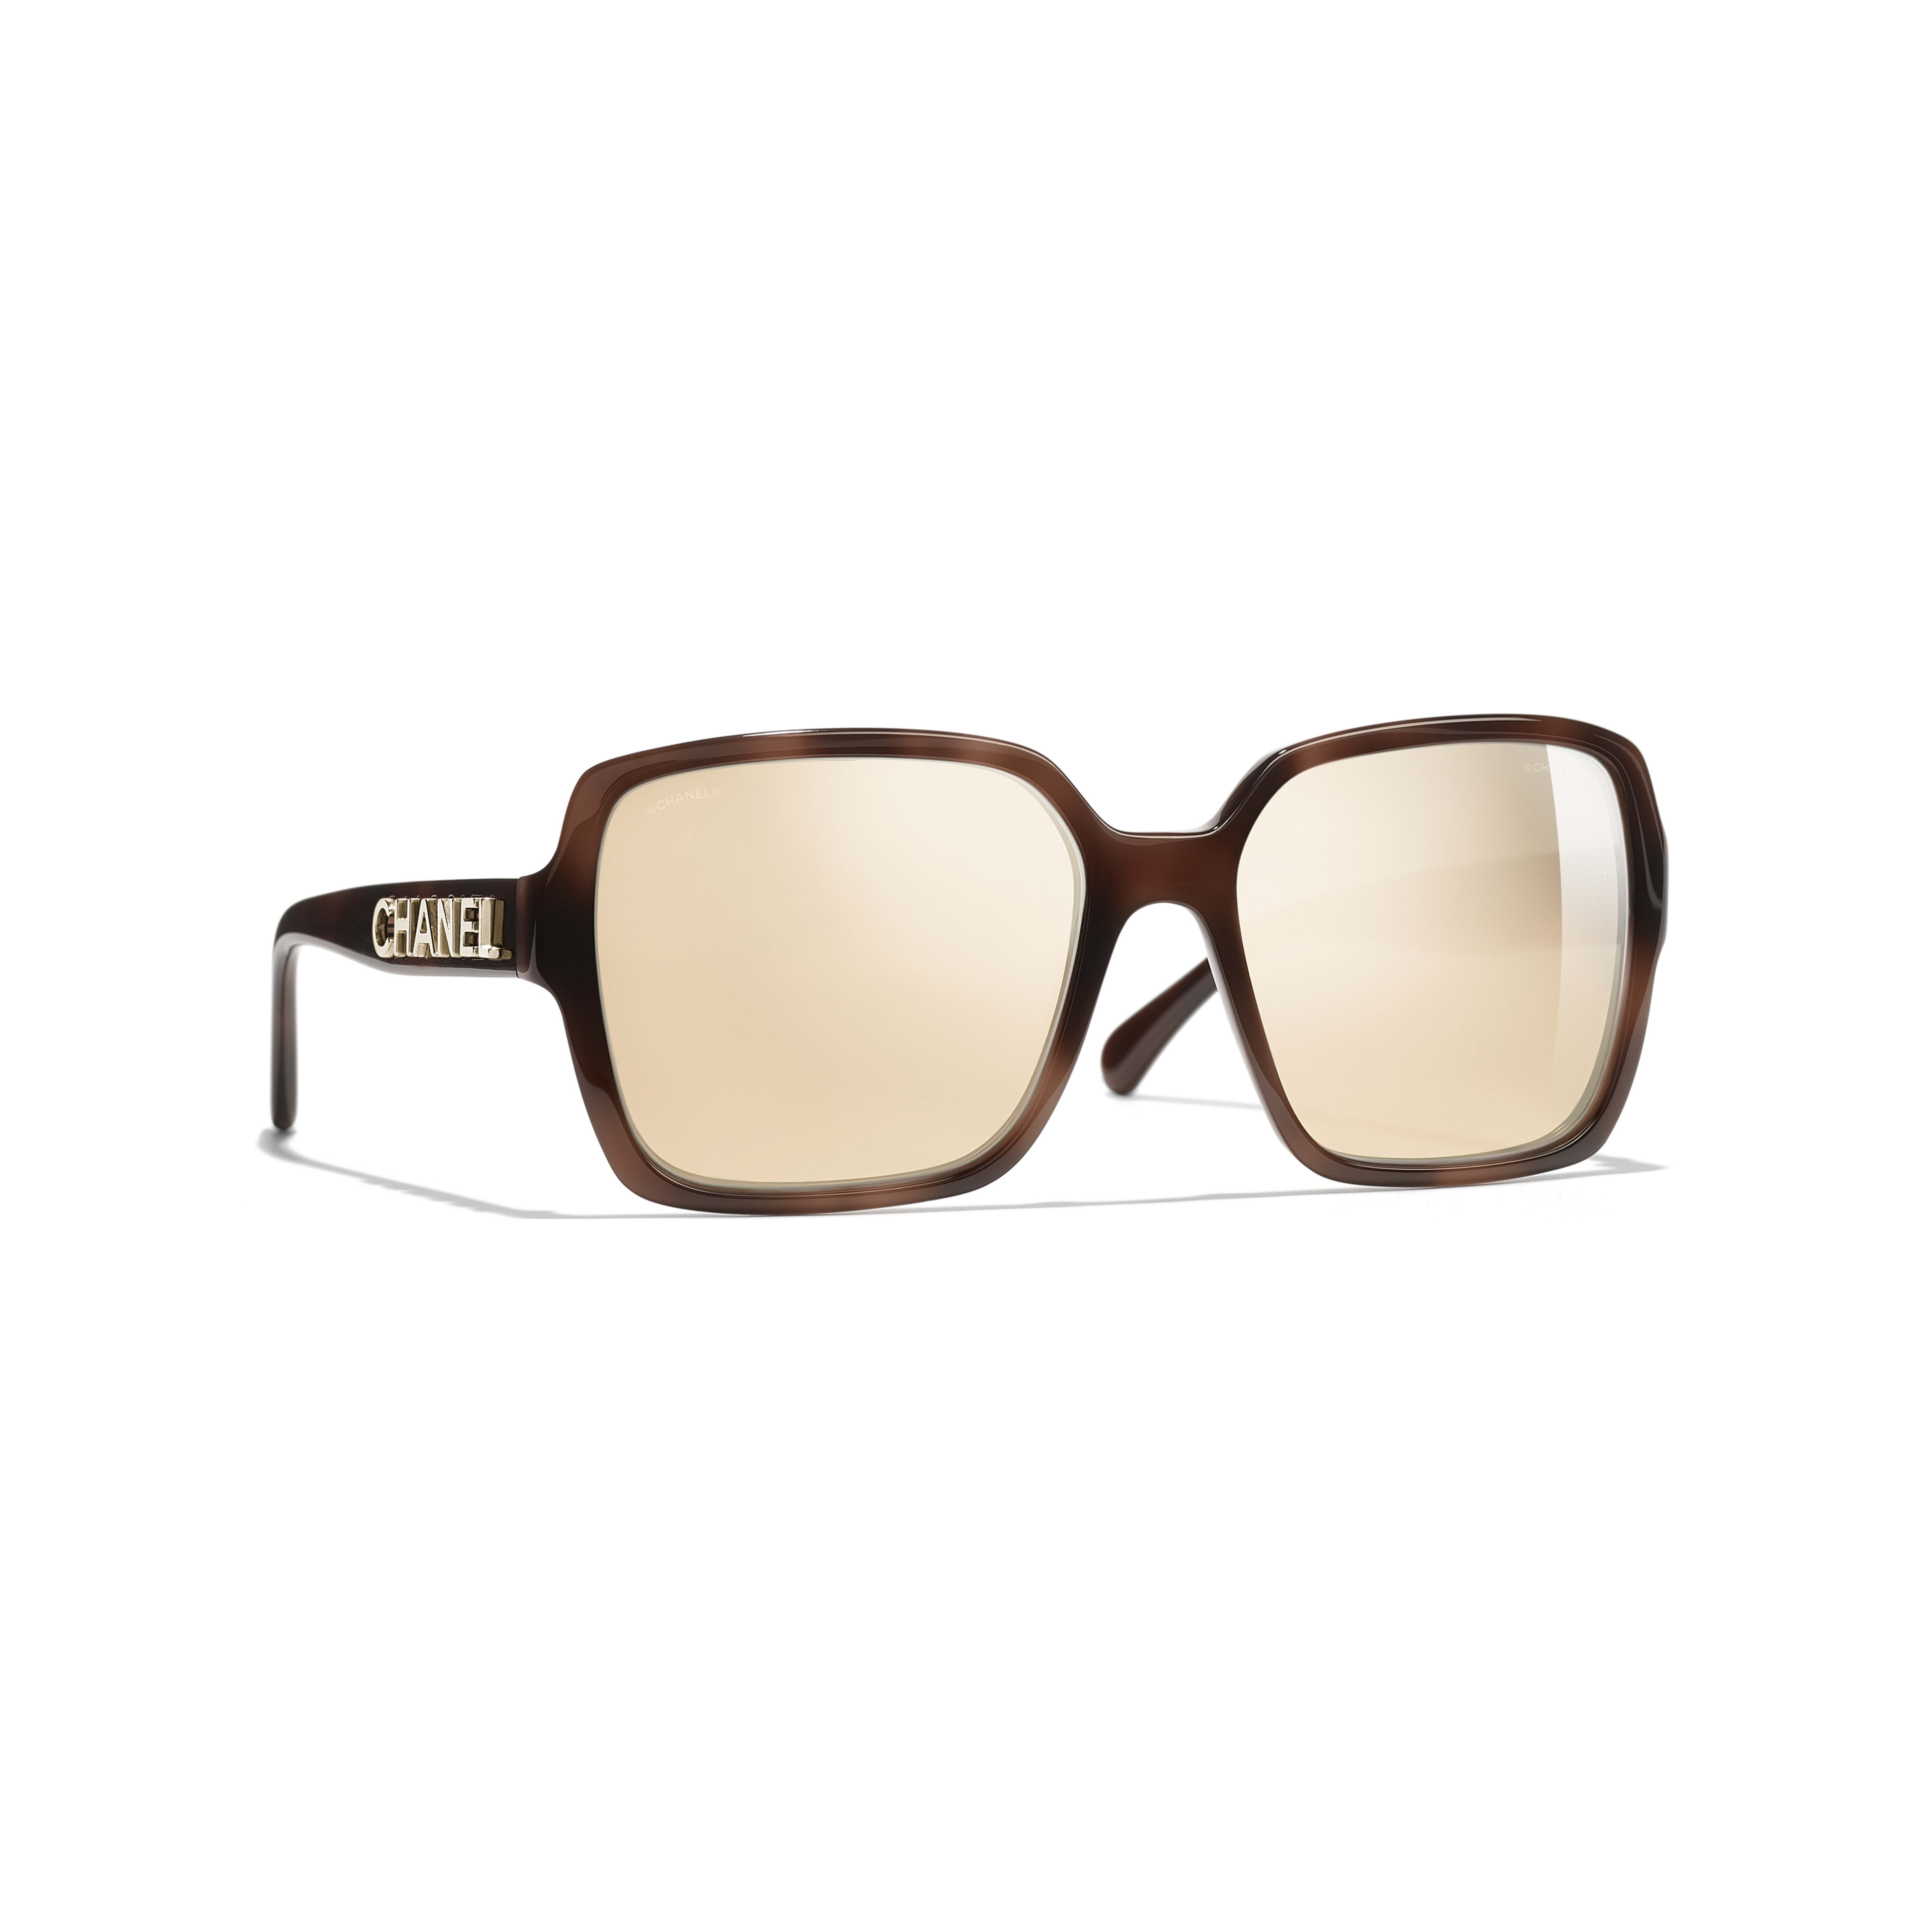 Square Sunglasses - Brown - Acetate - Default view - see full sized version